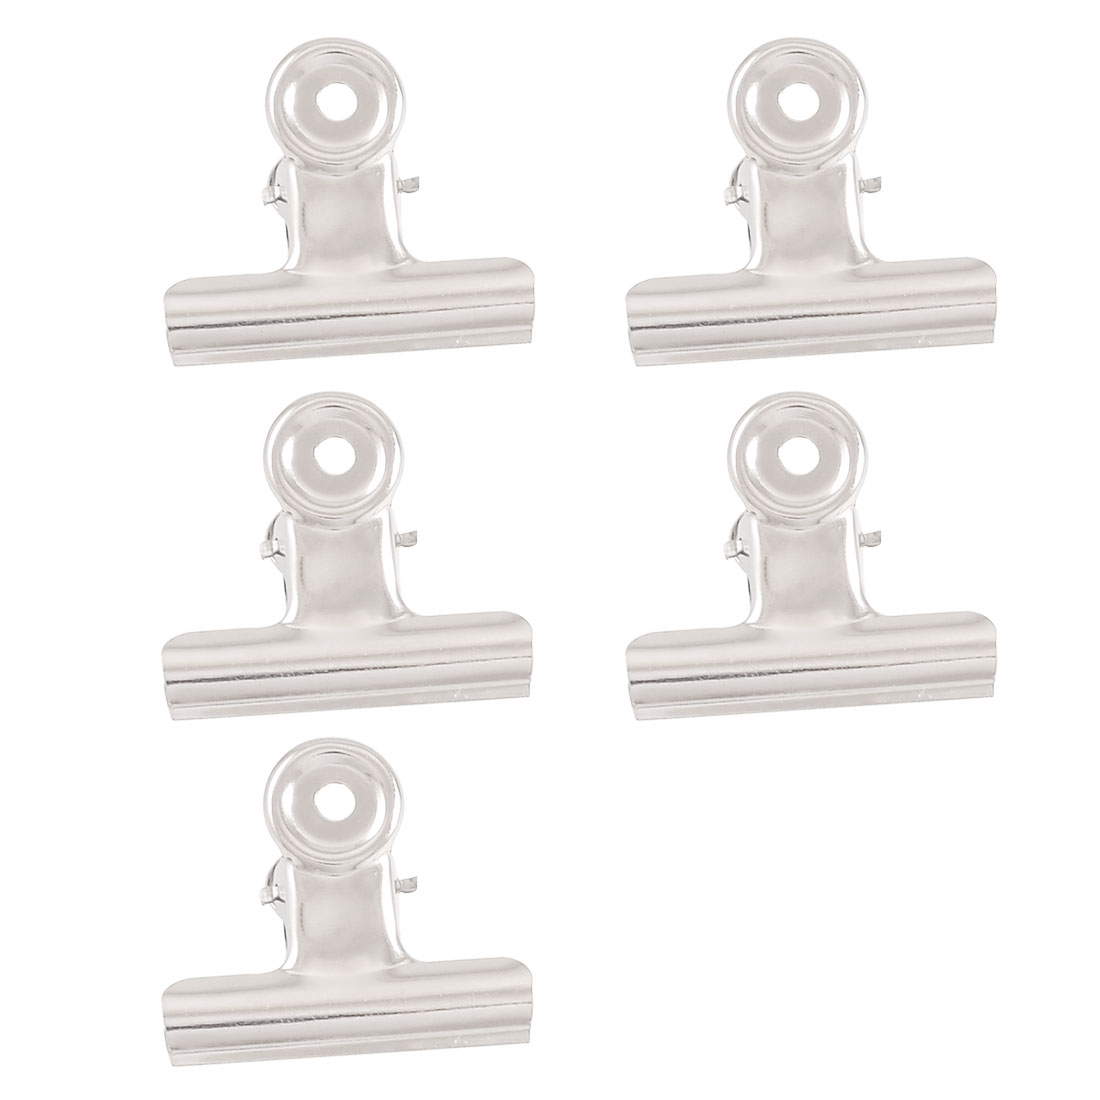 "5 Pcs Stainless Steel 2.4"" Width Document File Ticket Binder Clips"